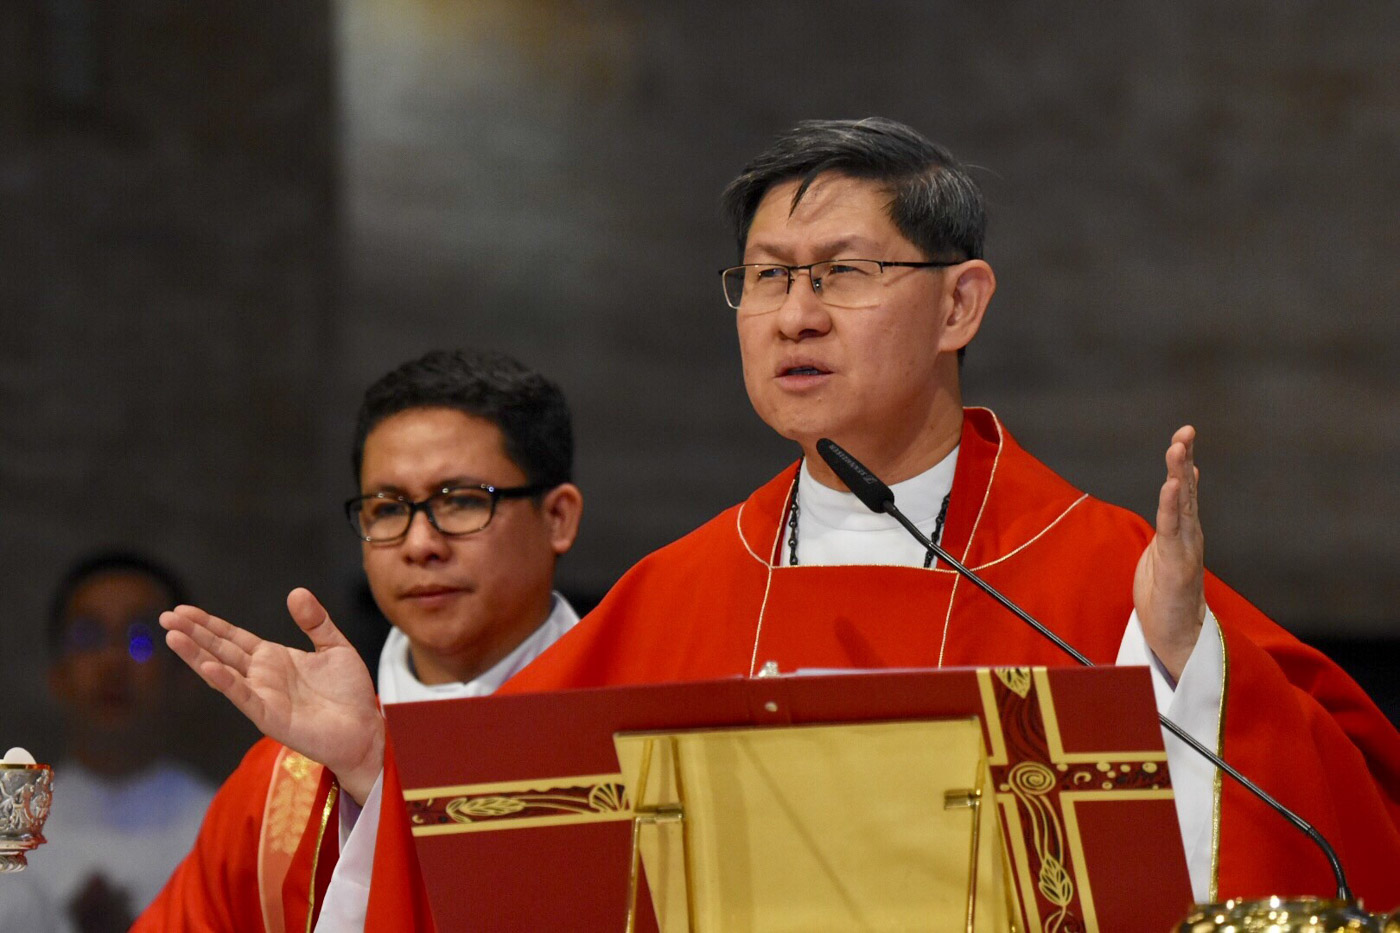 TOP PRELATE. Manila Archbishop Luis Antonio Cardinal Tagle leads the Good Friday service at the Manila Cathedral on March 30, 2018. Photo by Angie de Silva/Rappler